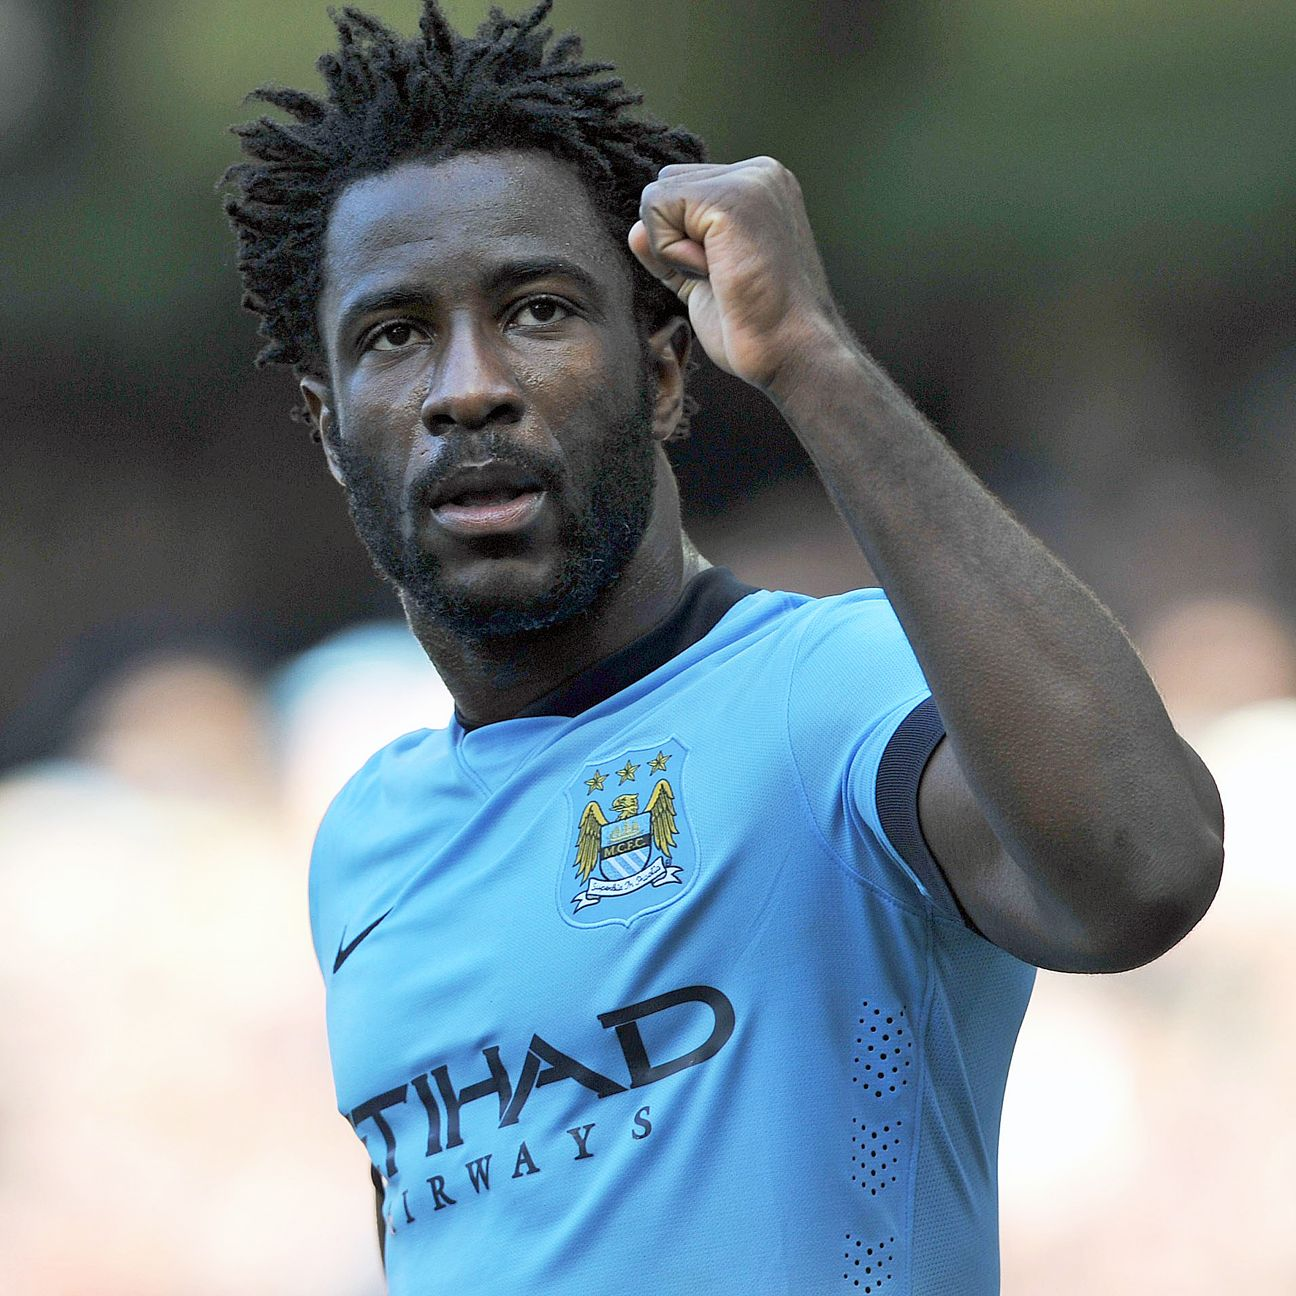 Wilfried Bony has just six Premier League goals since joining City from Swansea in January 2015.